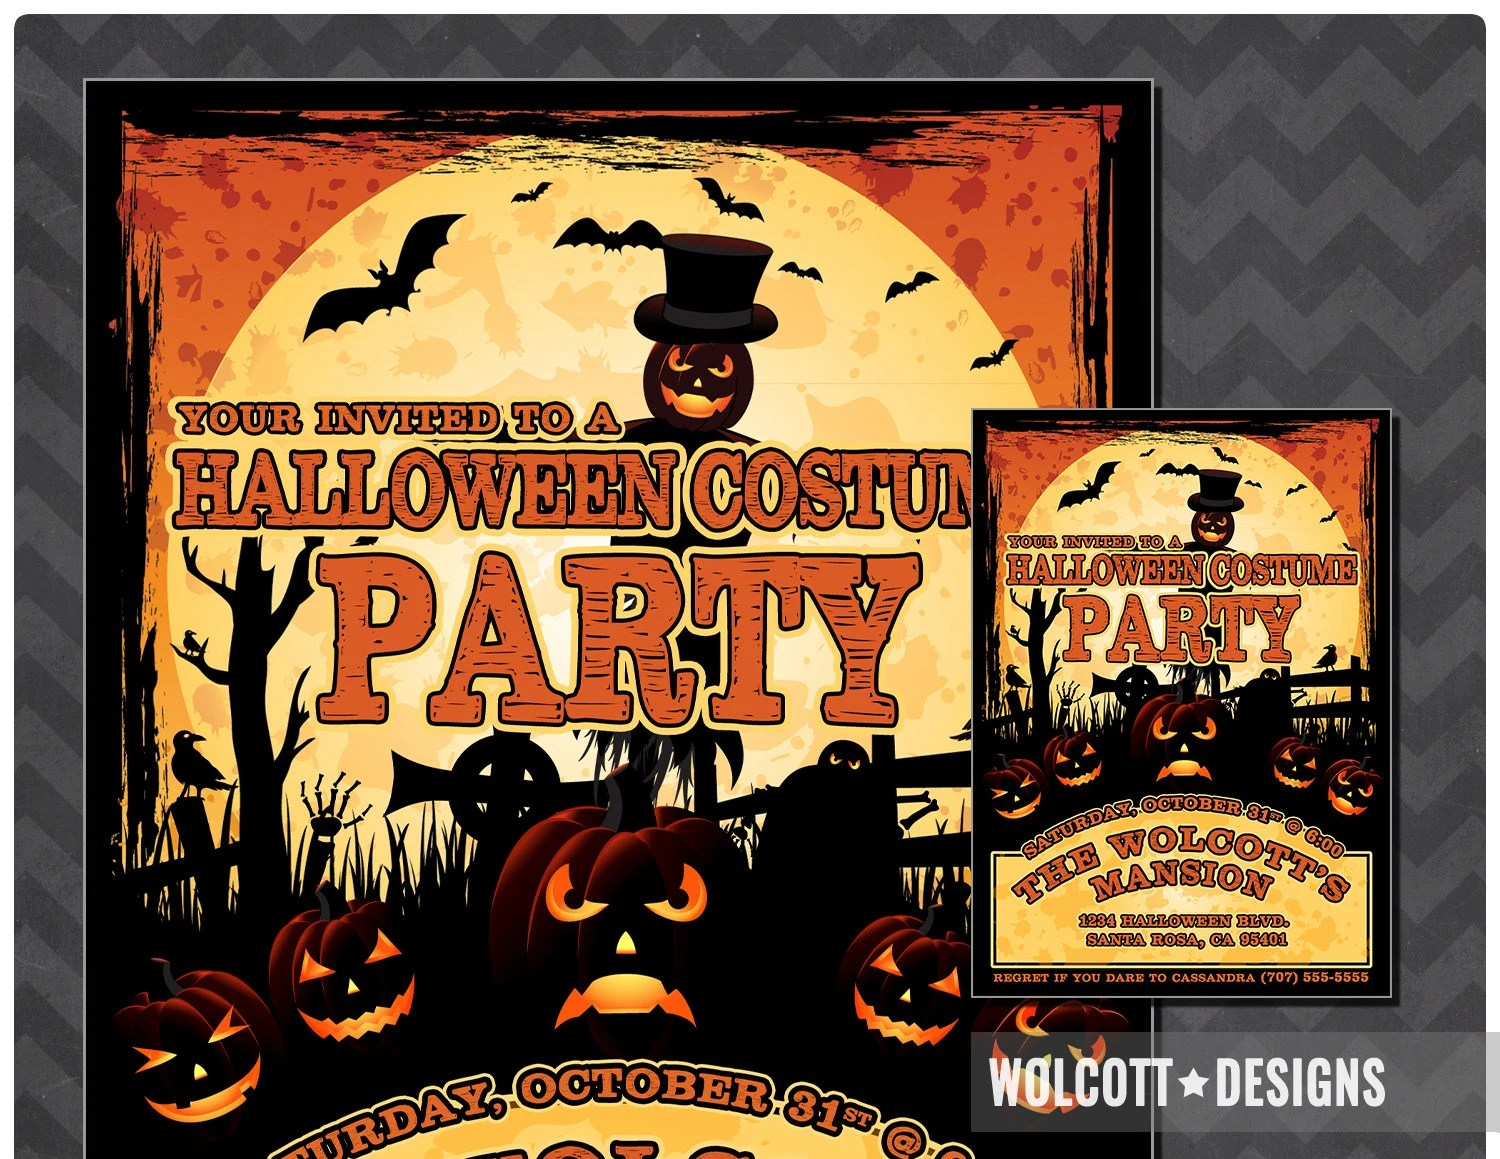 Halloween Costume Party Costume Party Invitation Costume Etsy